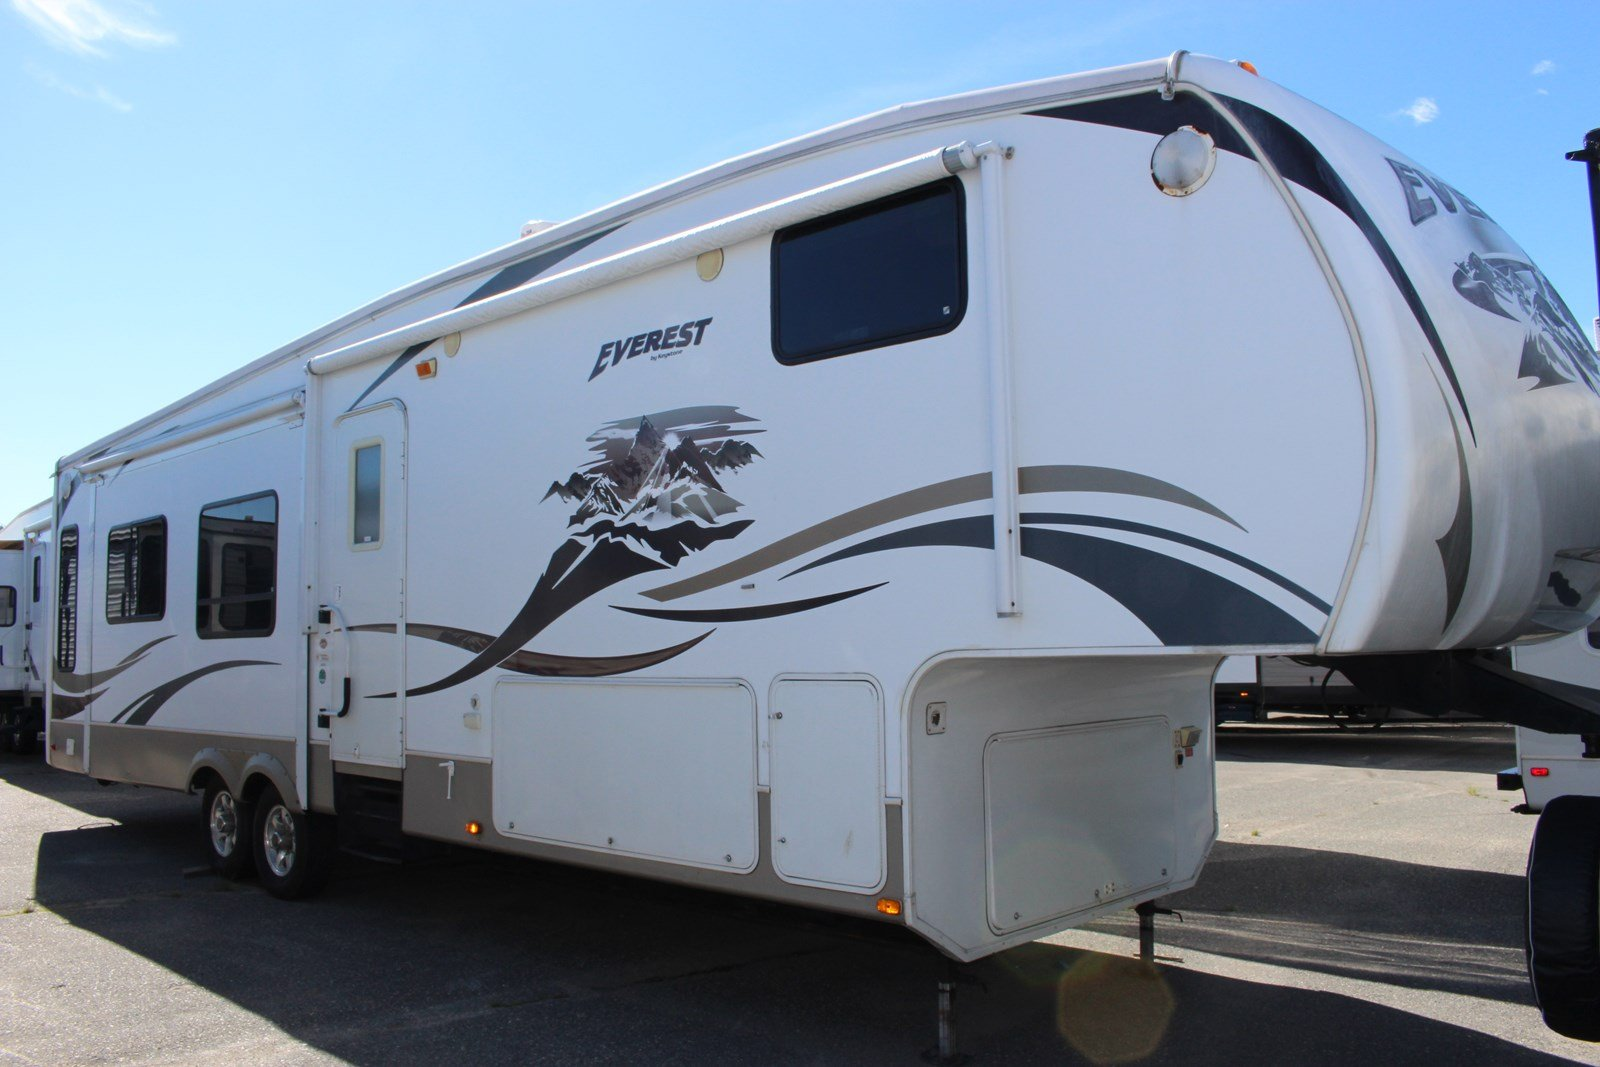 Pre-Owned 2008 KEYSTONE EVEREST 348R